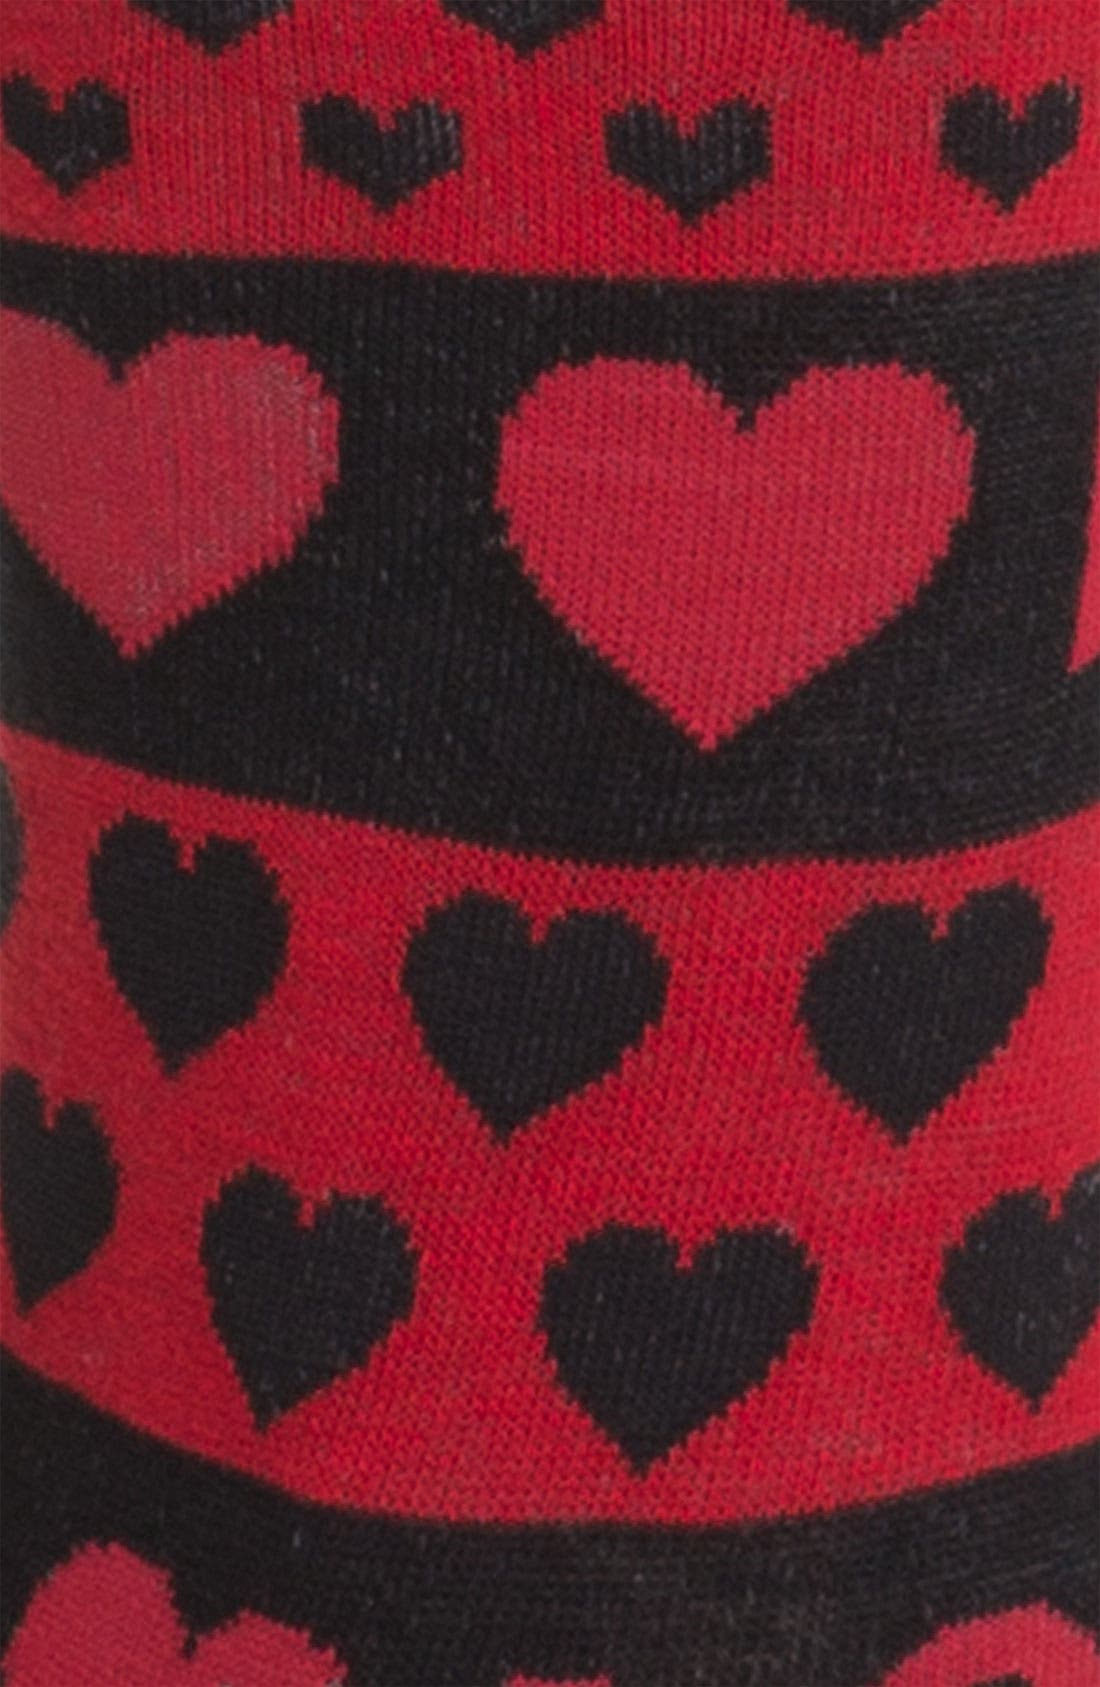 'Hugs & Kisses' Socks,                             Alternate thumbnail 2, color,                             001